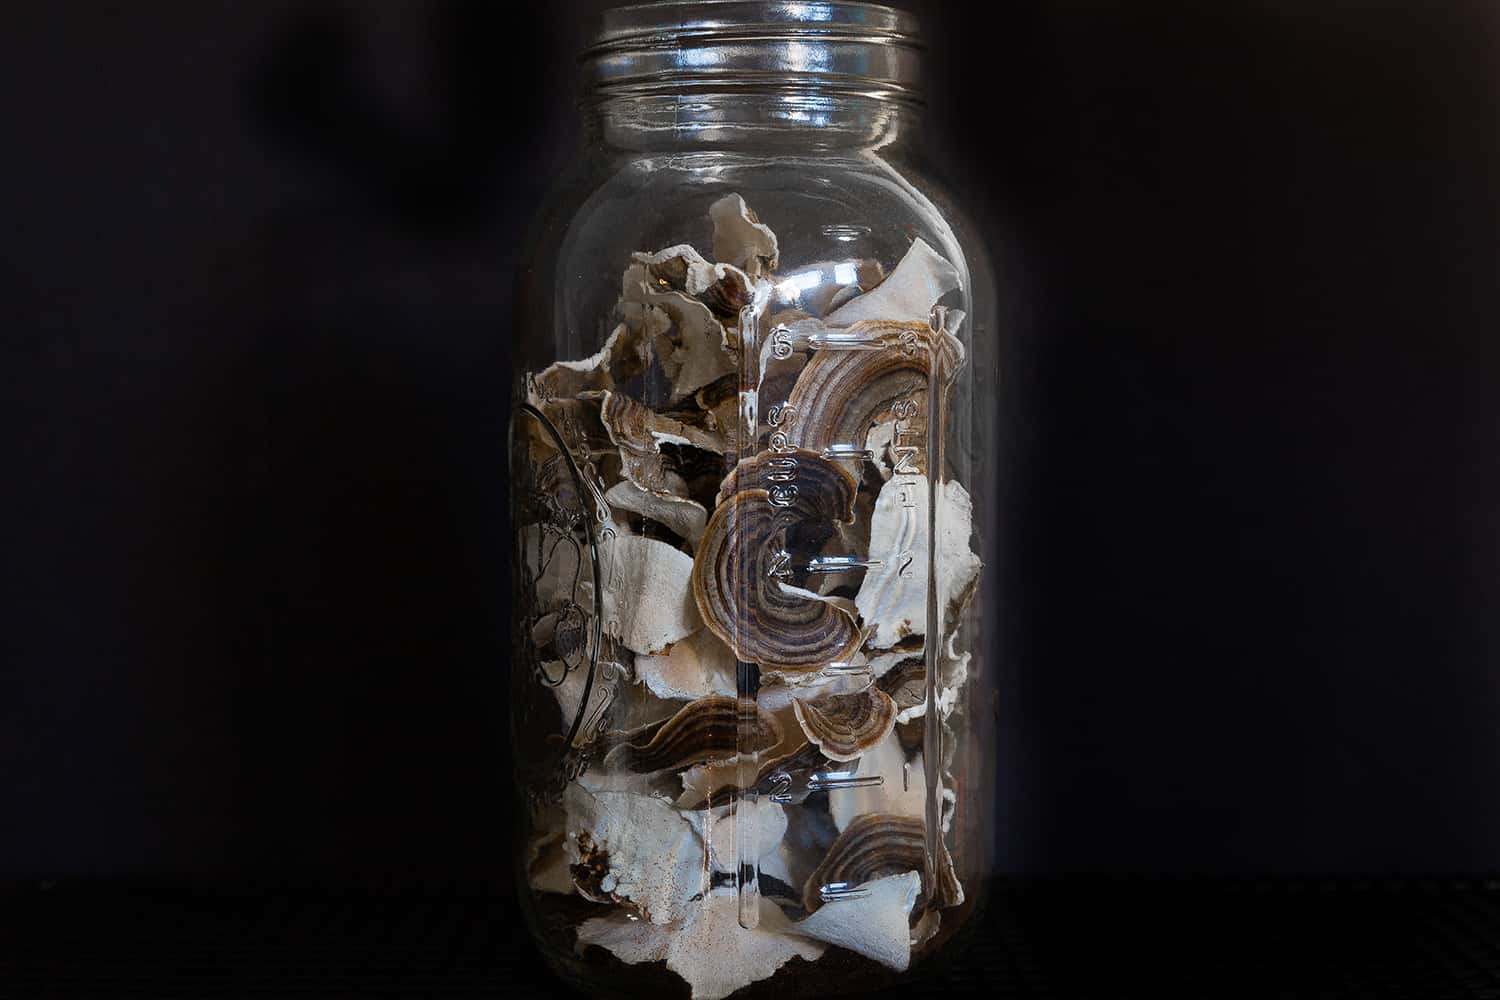 Portland florist stores dried Turkey Tail mushrooms in glass canning jar for longterm storage